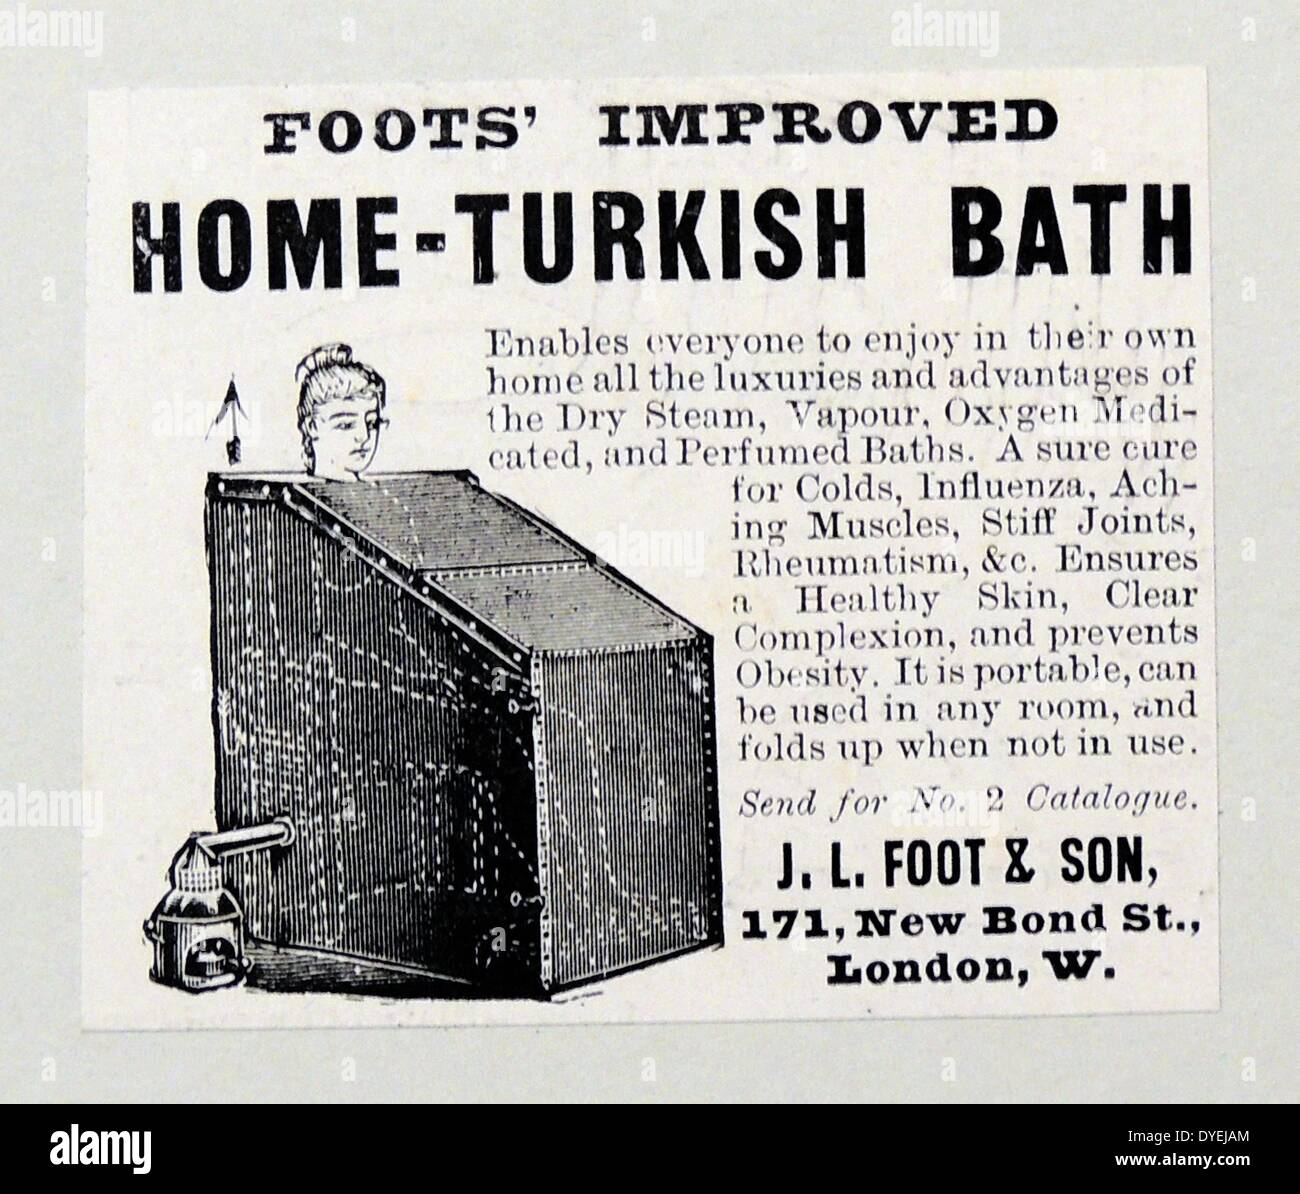 Advertisement for a home Turkish Bath. Engraving, London, 1900. Stock Photo